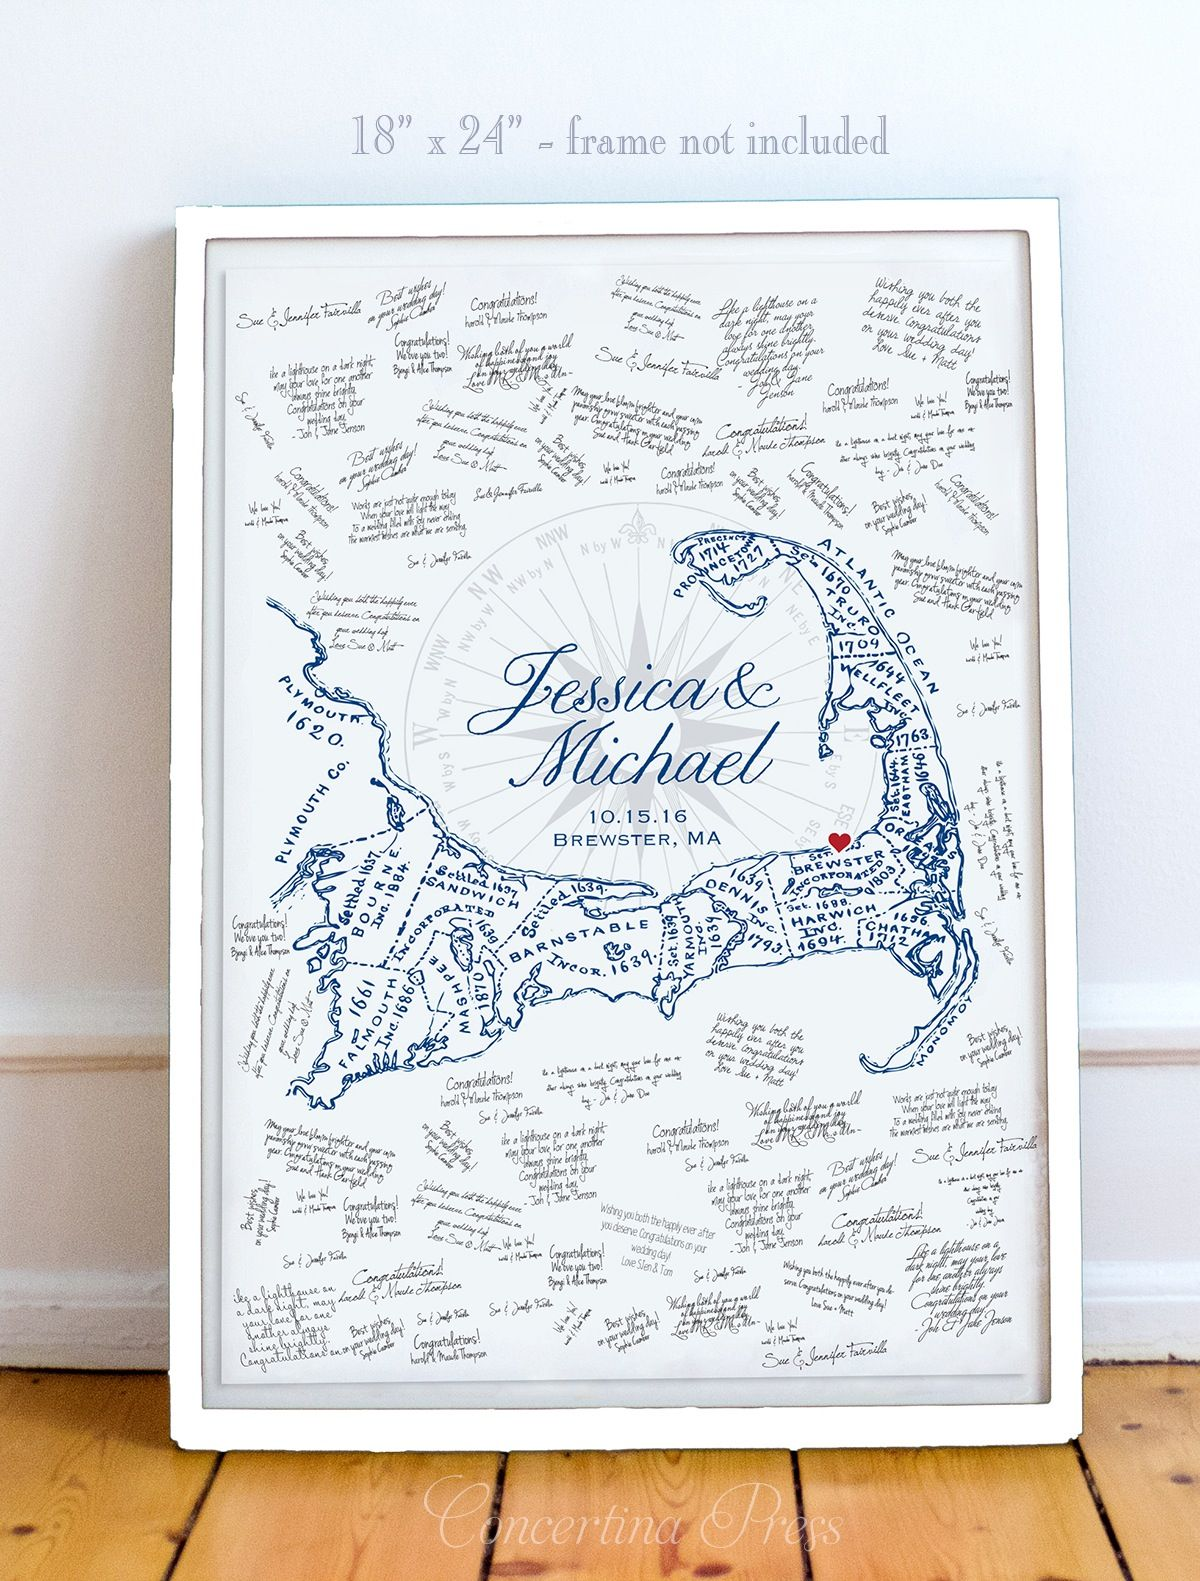 Cape Cod Wedding Ideas Part - 24: Image Of Cape Cod Wedding Guest Book With Map More